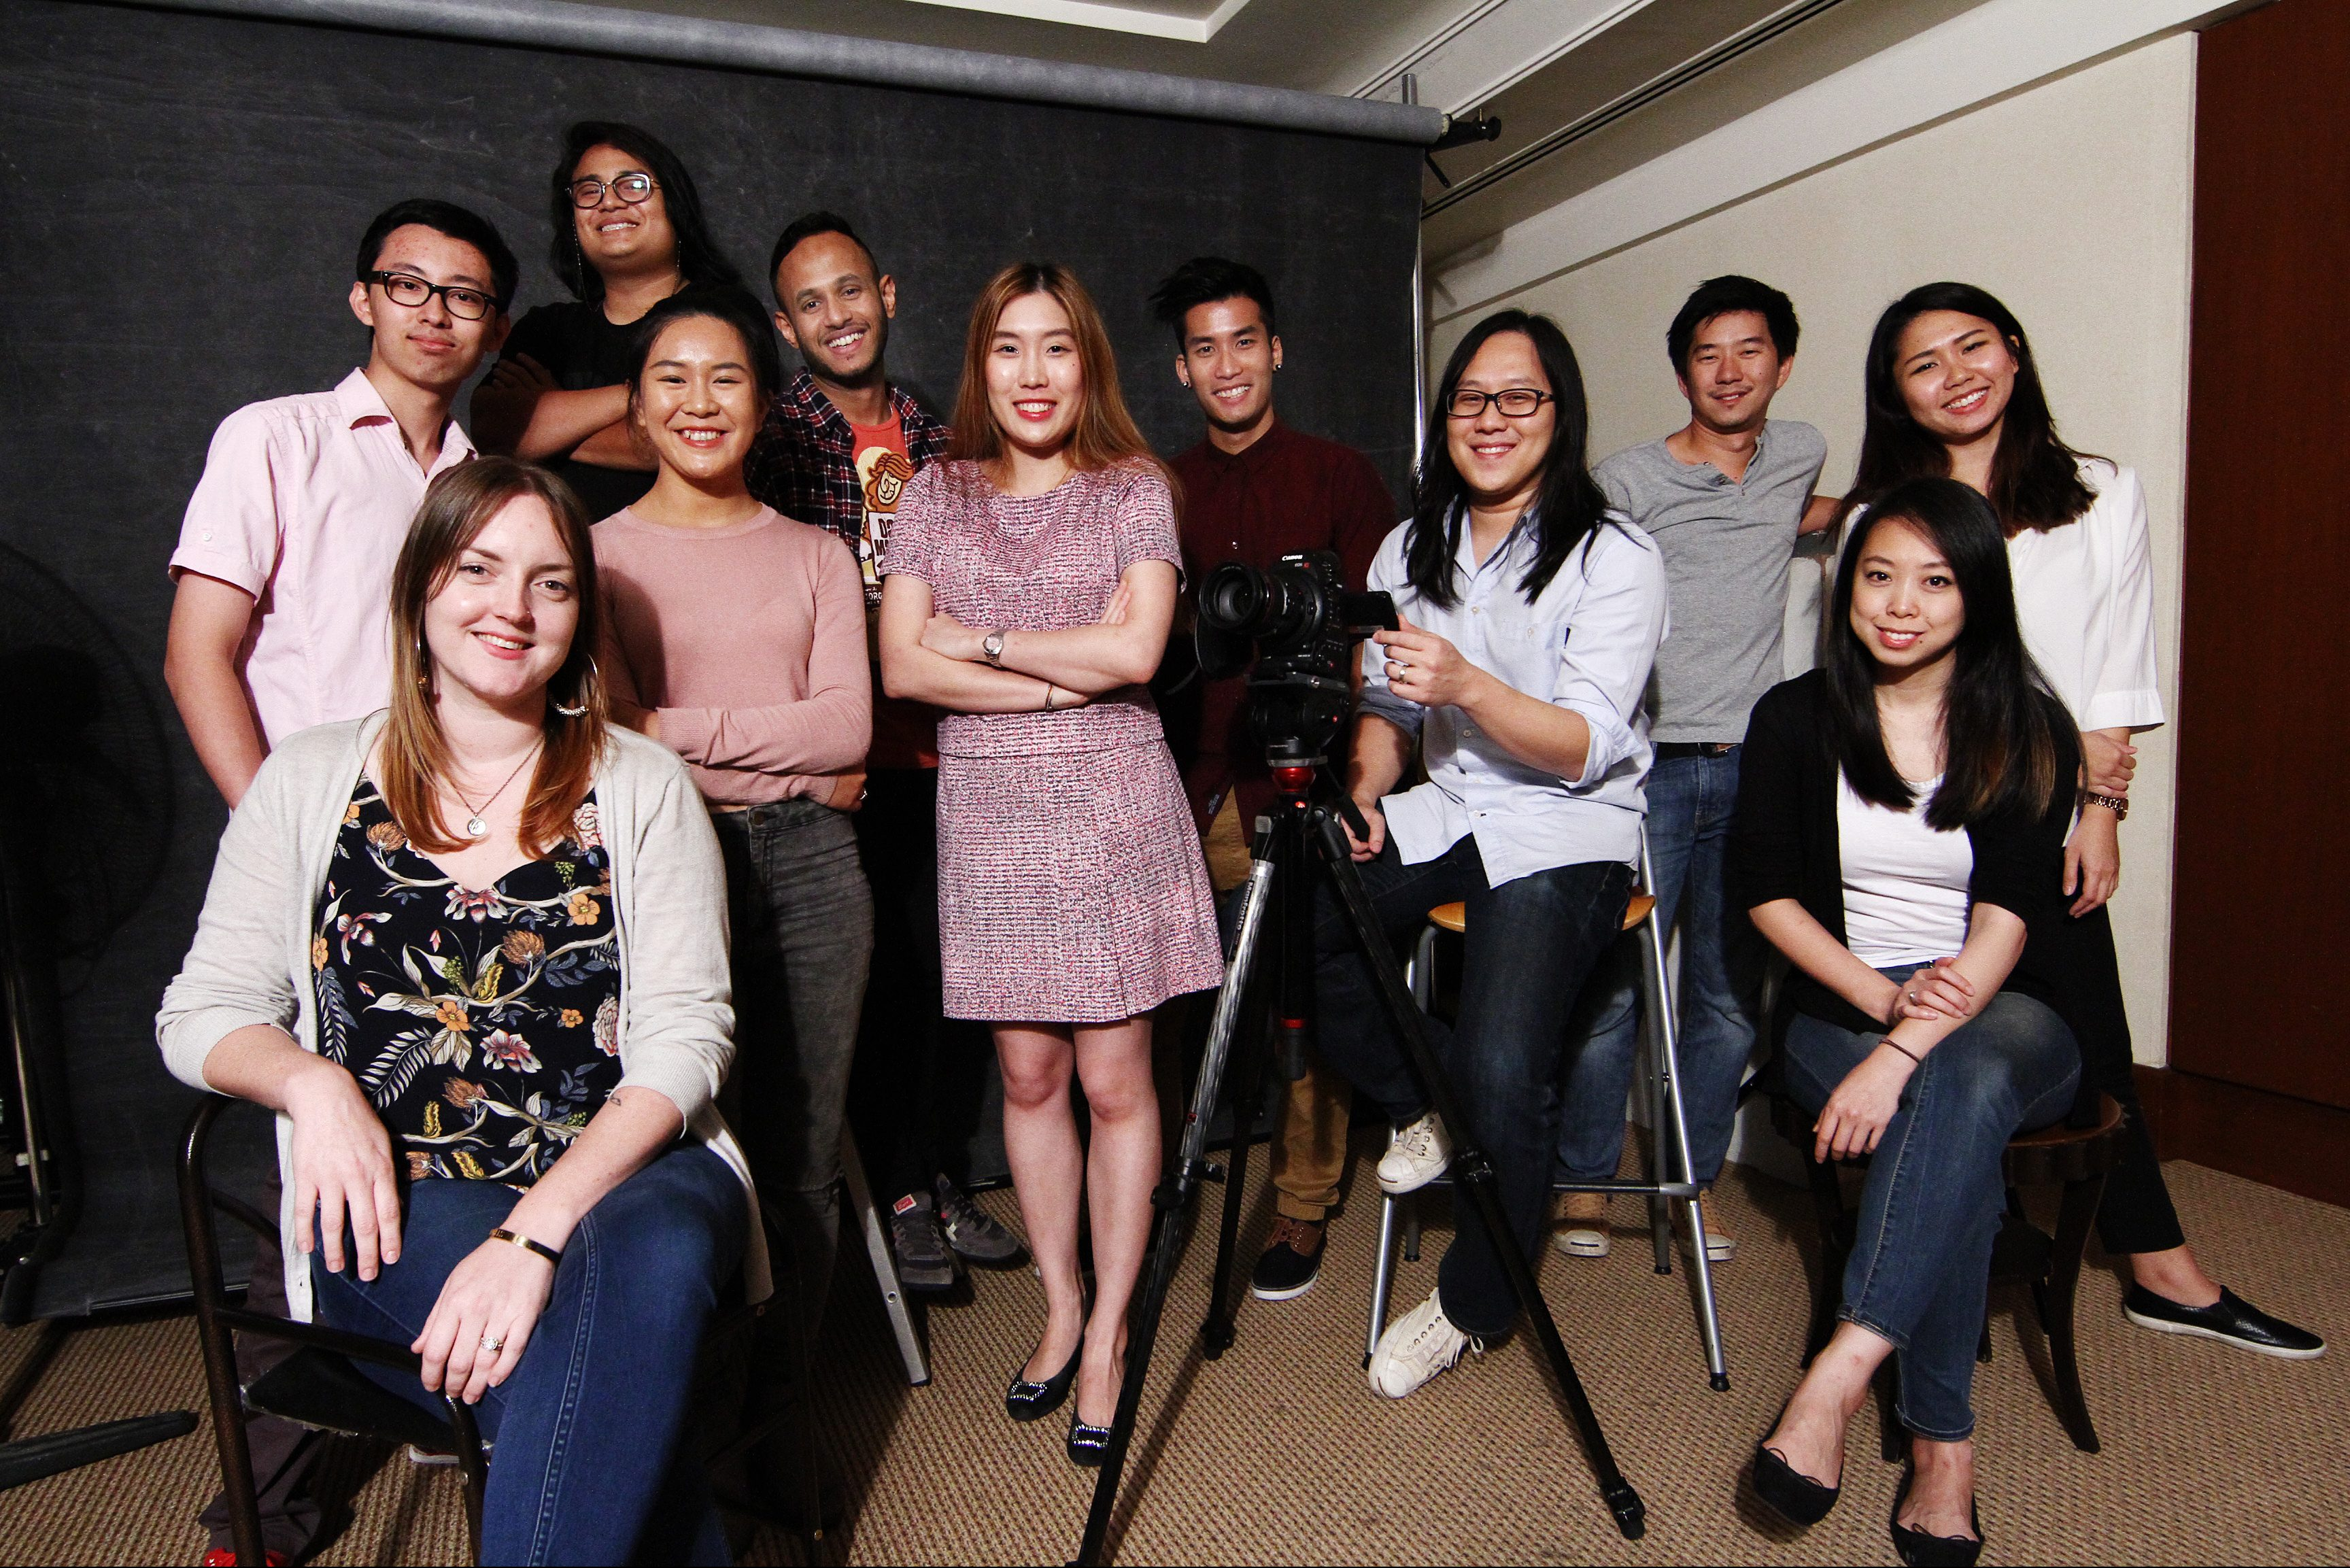 The R.AGE team of 2017: (From left) Claire Anthony (seated), Julien Chen, Hafriz Iqbal, Clarissa Say, Shanjeev Reddy, Natasha Venner-Pack, Hansel Khoo, Ian Yee, Elroi Yee, Lim May Lee (seated), Samantha Chow and Chen Yih Wen (not in picture). — RAYMOND OOI/ The Star